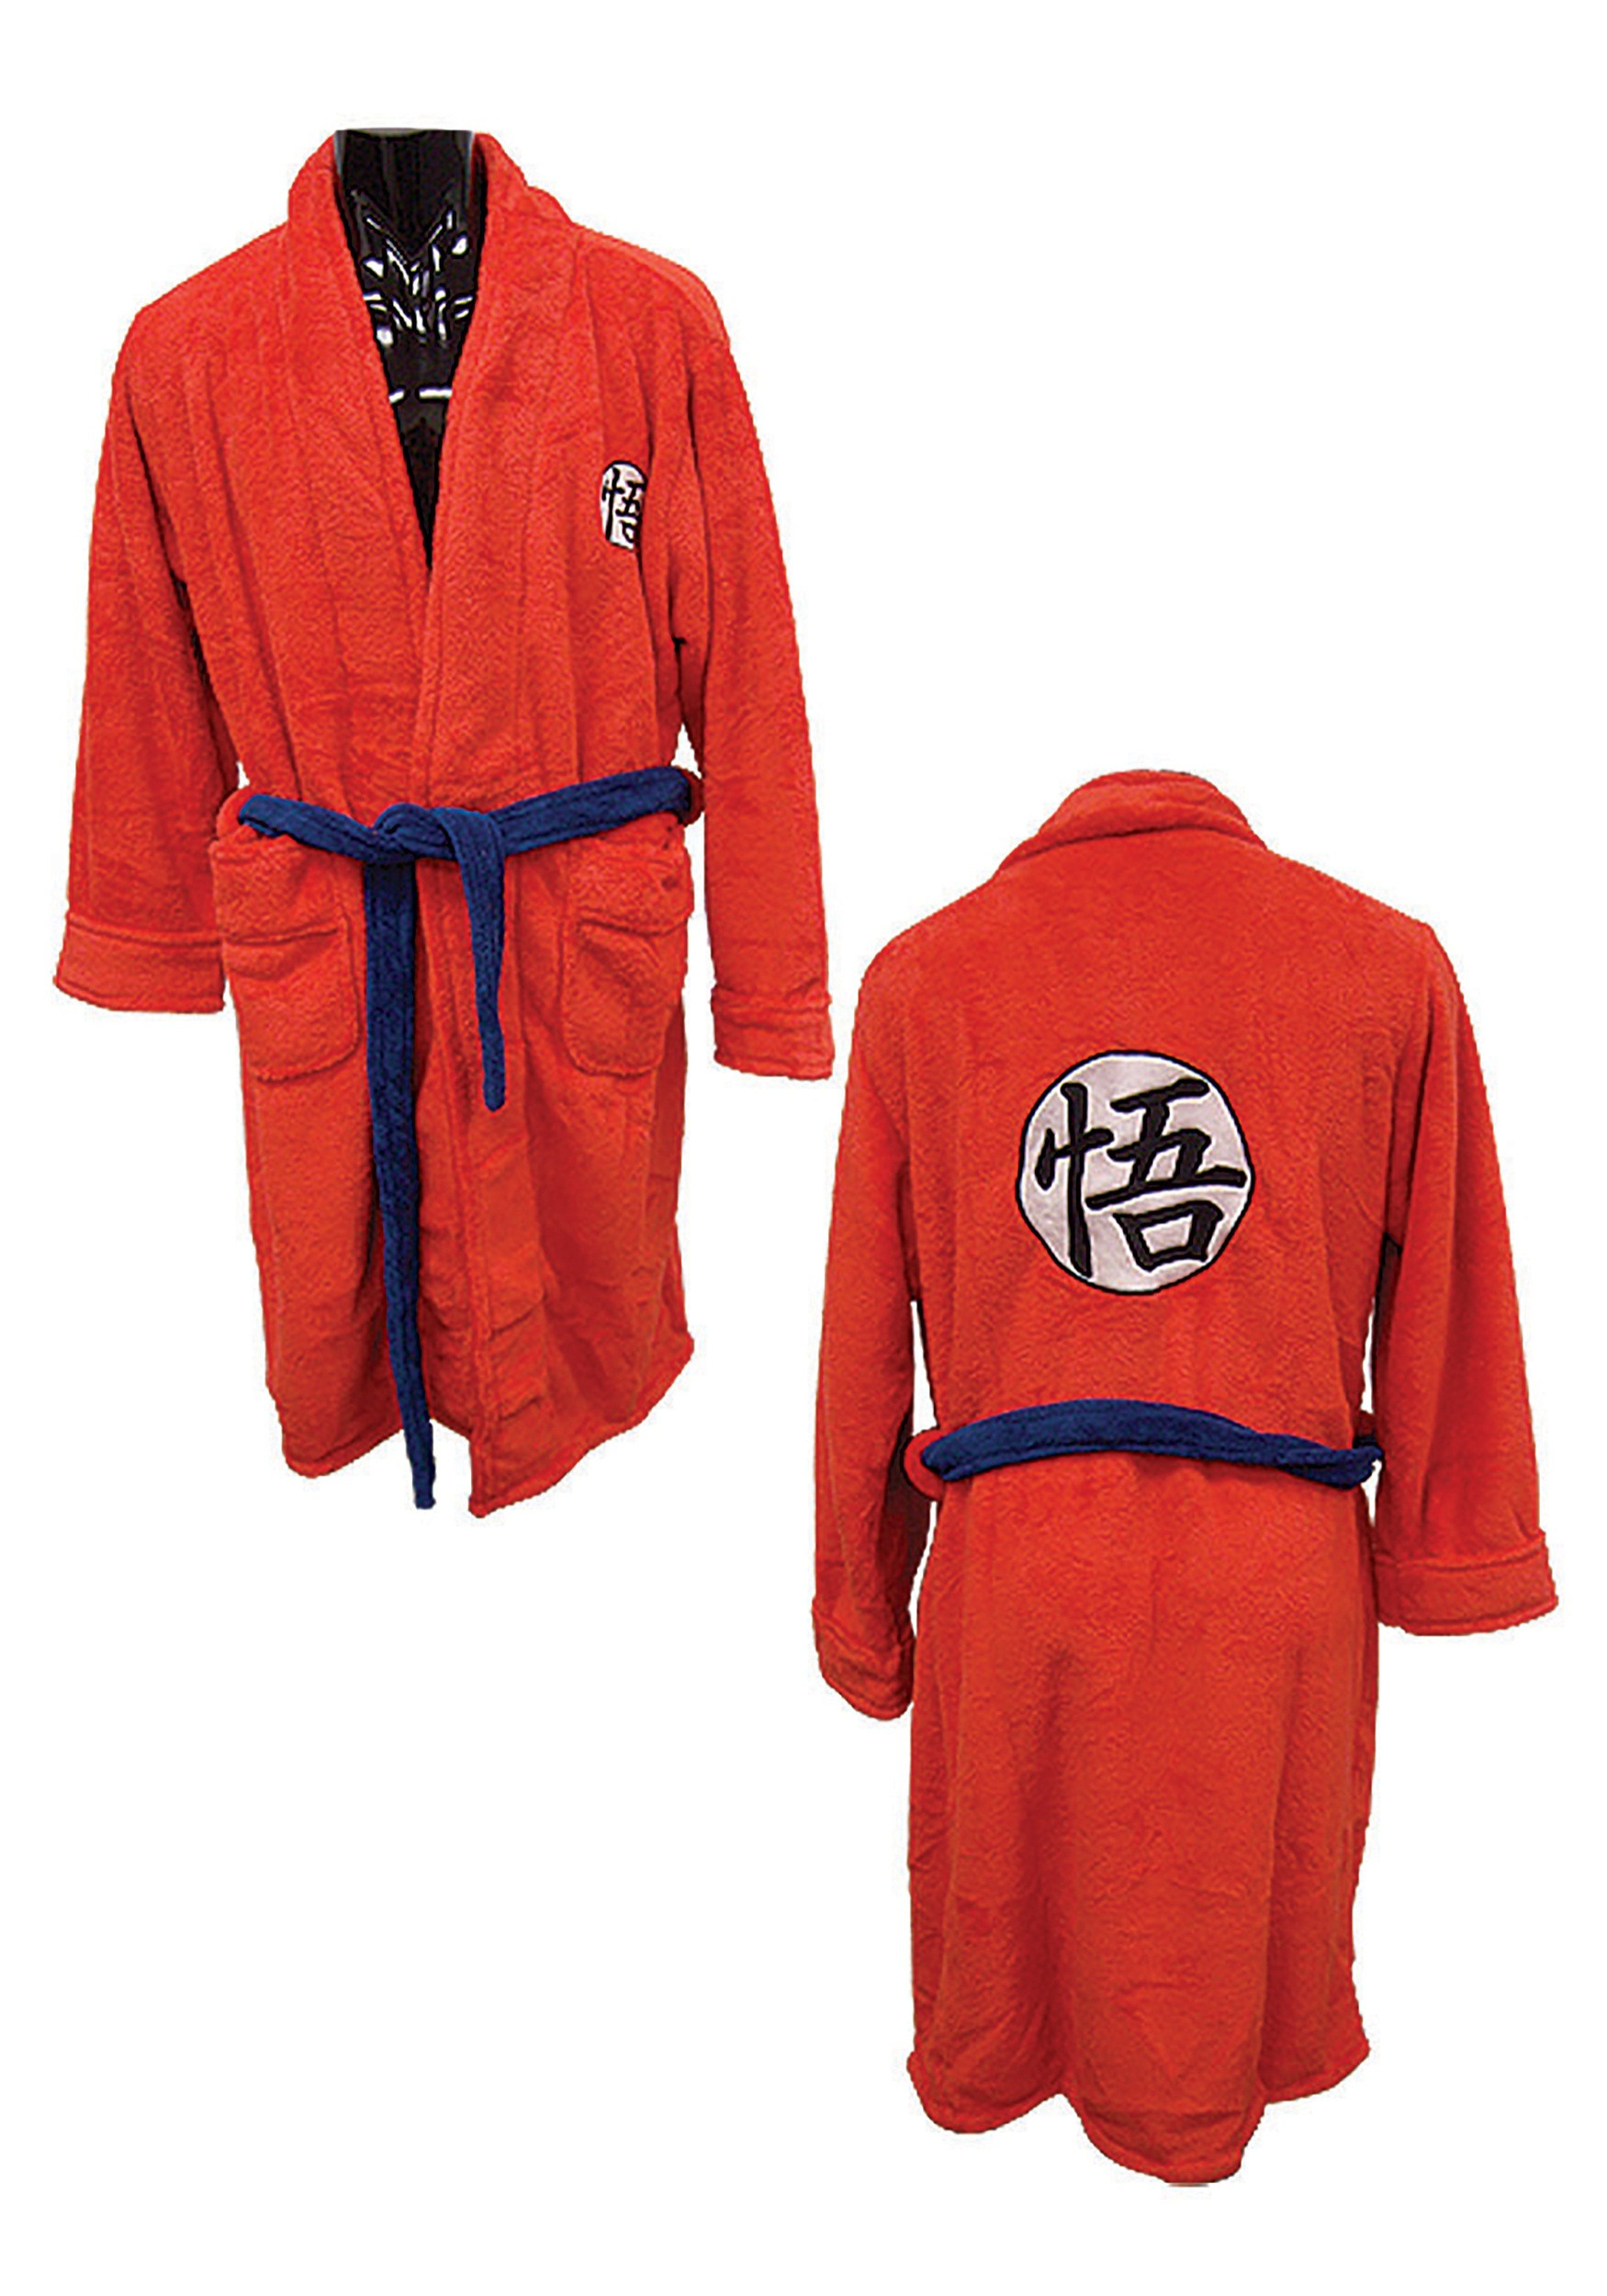 Dragon ball z goku bath robe for Dragon ball z bathroom